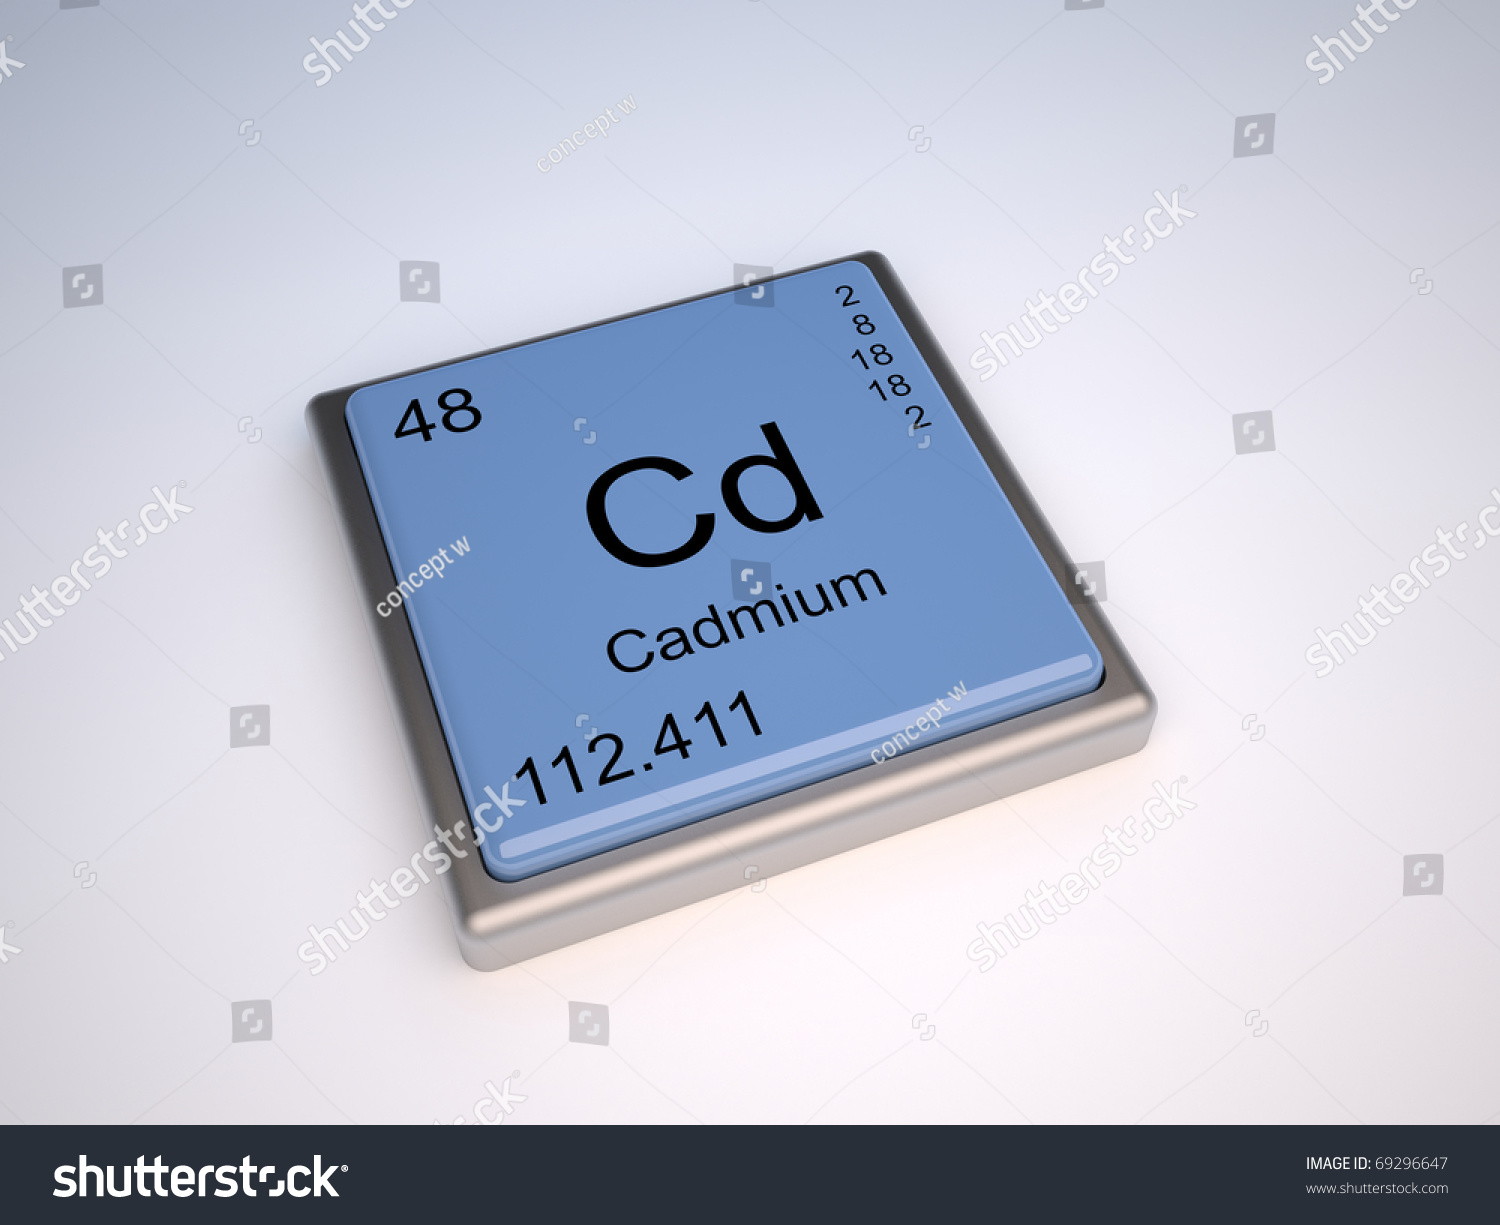 Cadmium Chemical Element Of The Periodic Table With Symbol ...